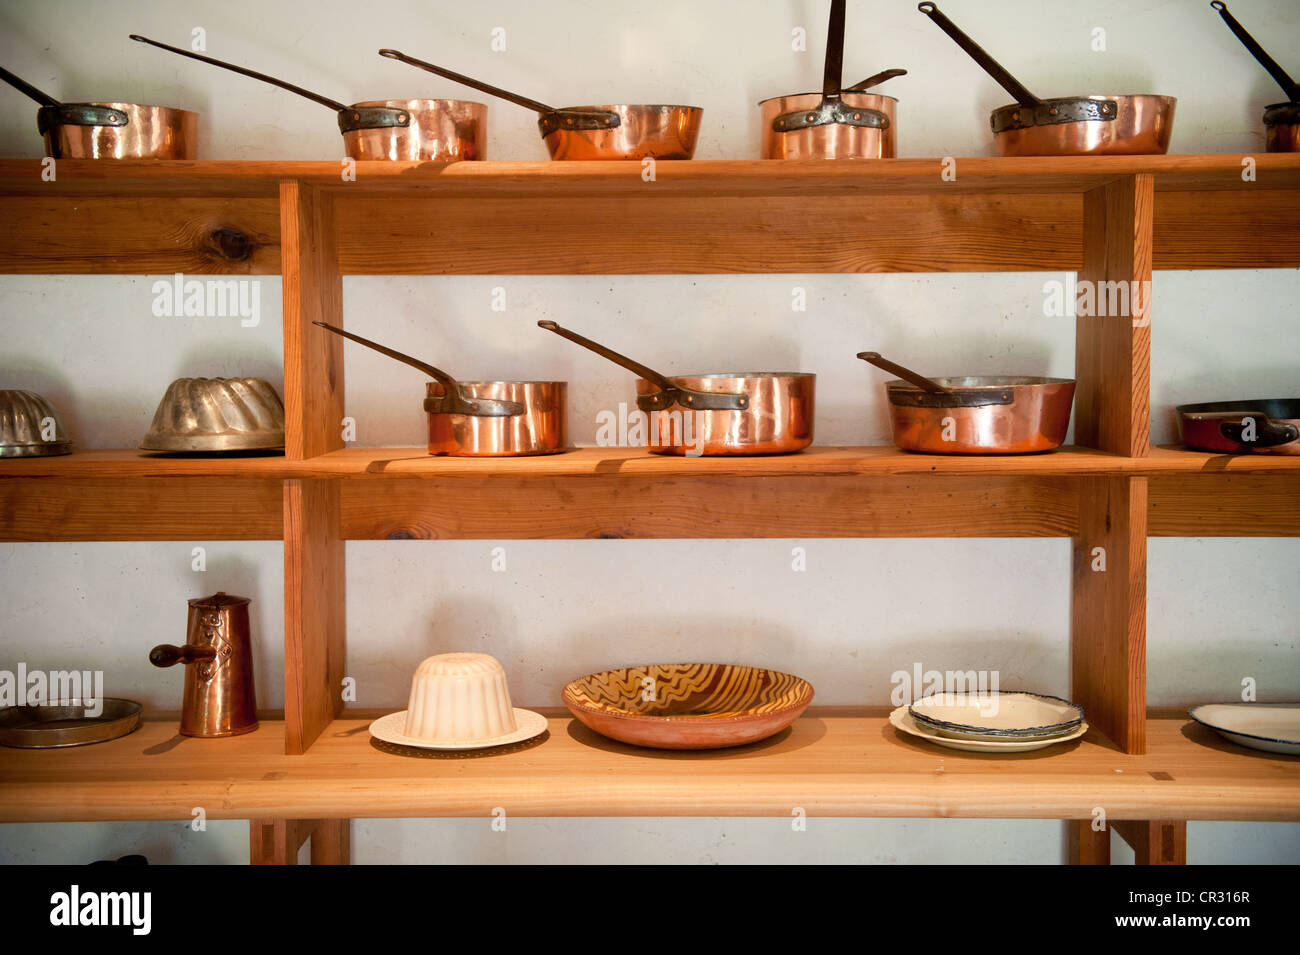 Shelves Of Copper Pots And Pans In A Kitchen On Thomas